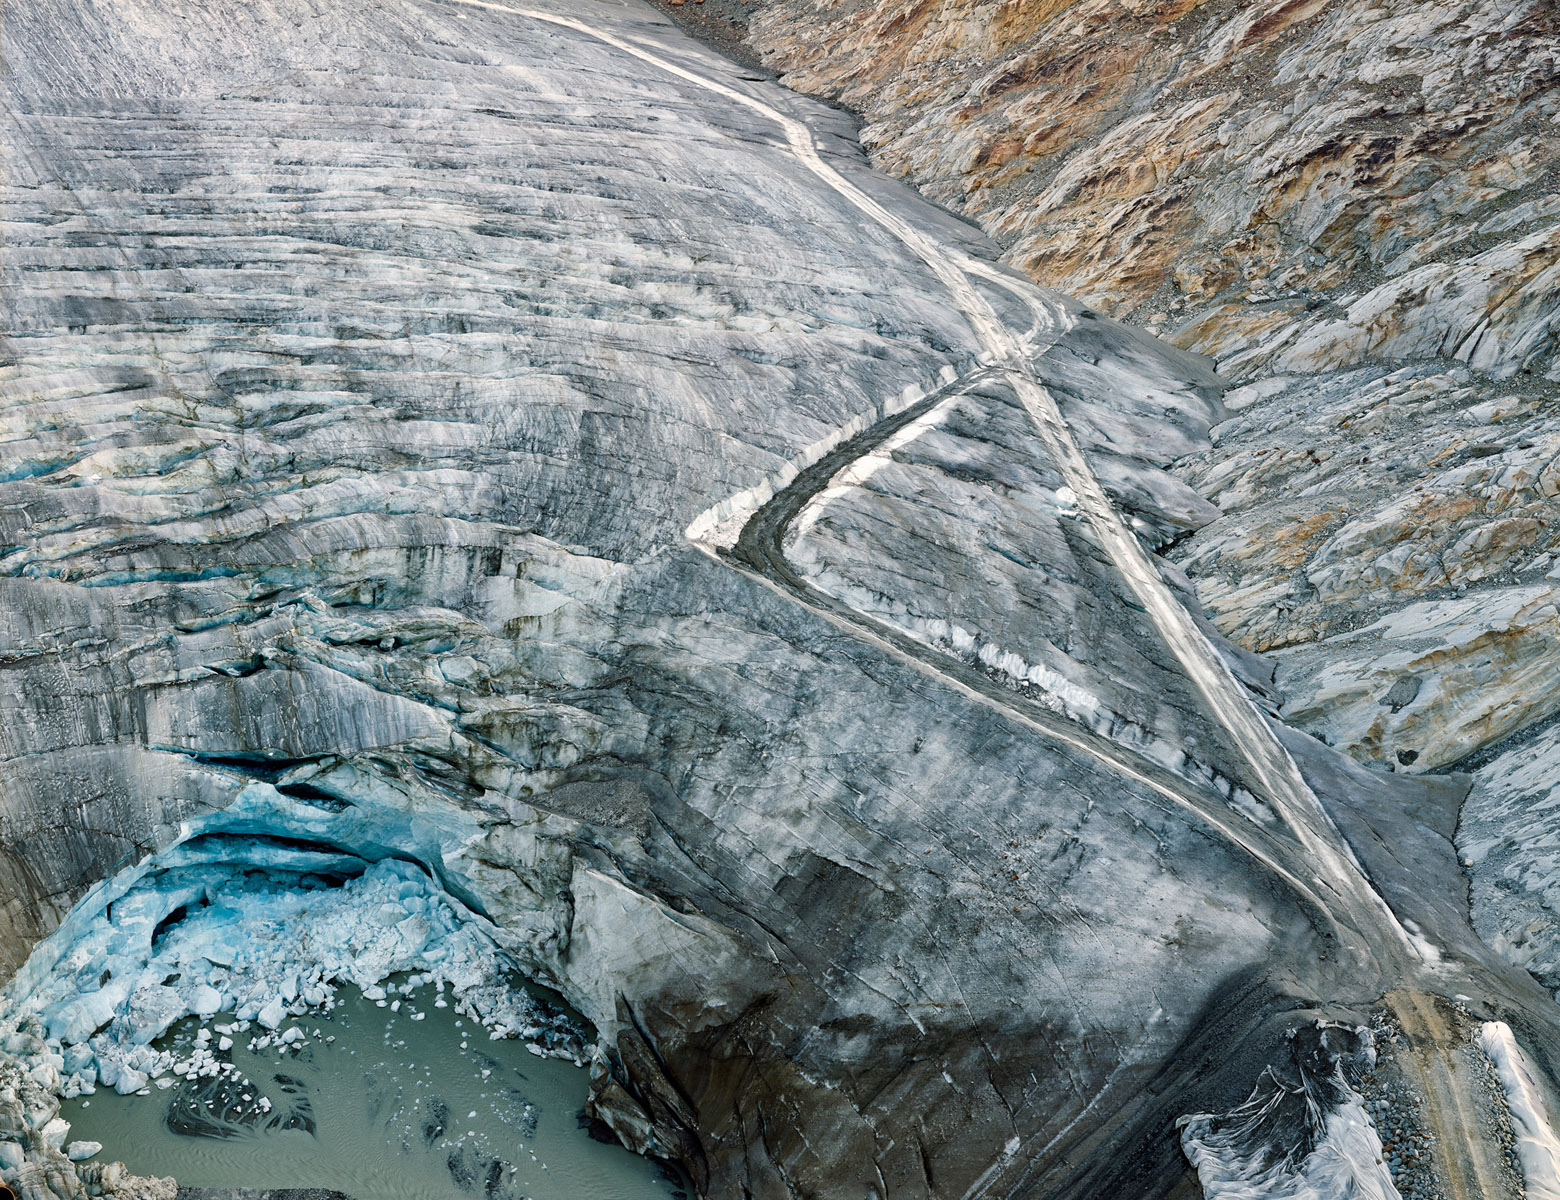 Olaf Unverzart, Trucktracks on a Glacier, Syngenta Photo Award